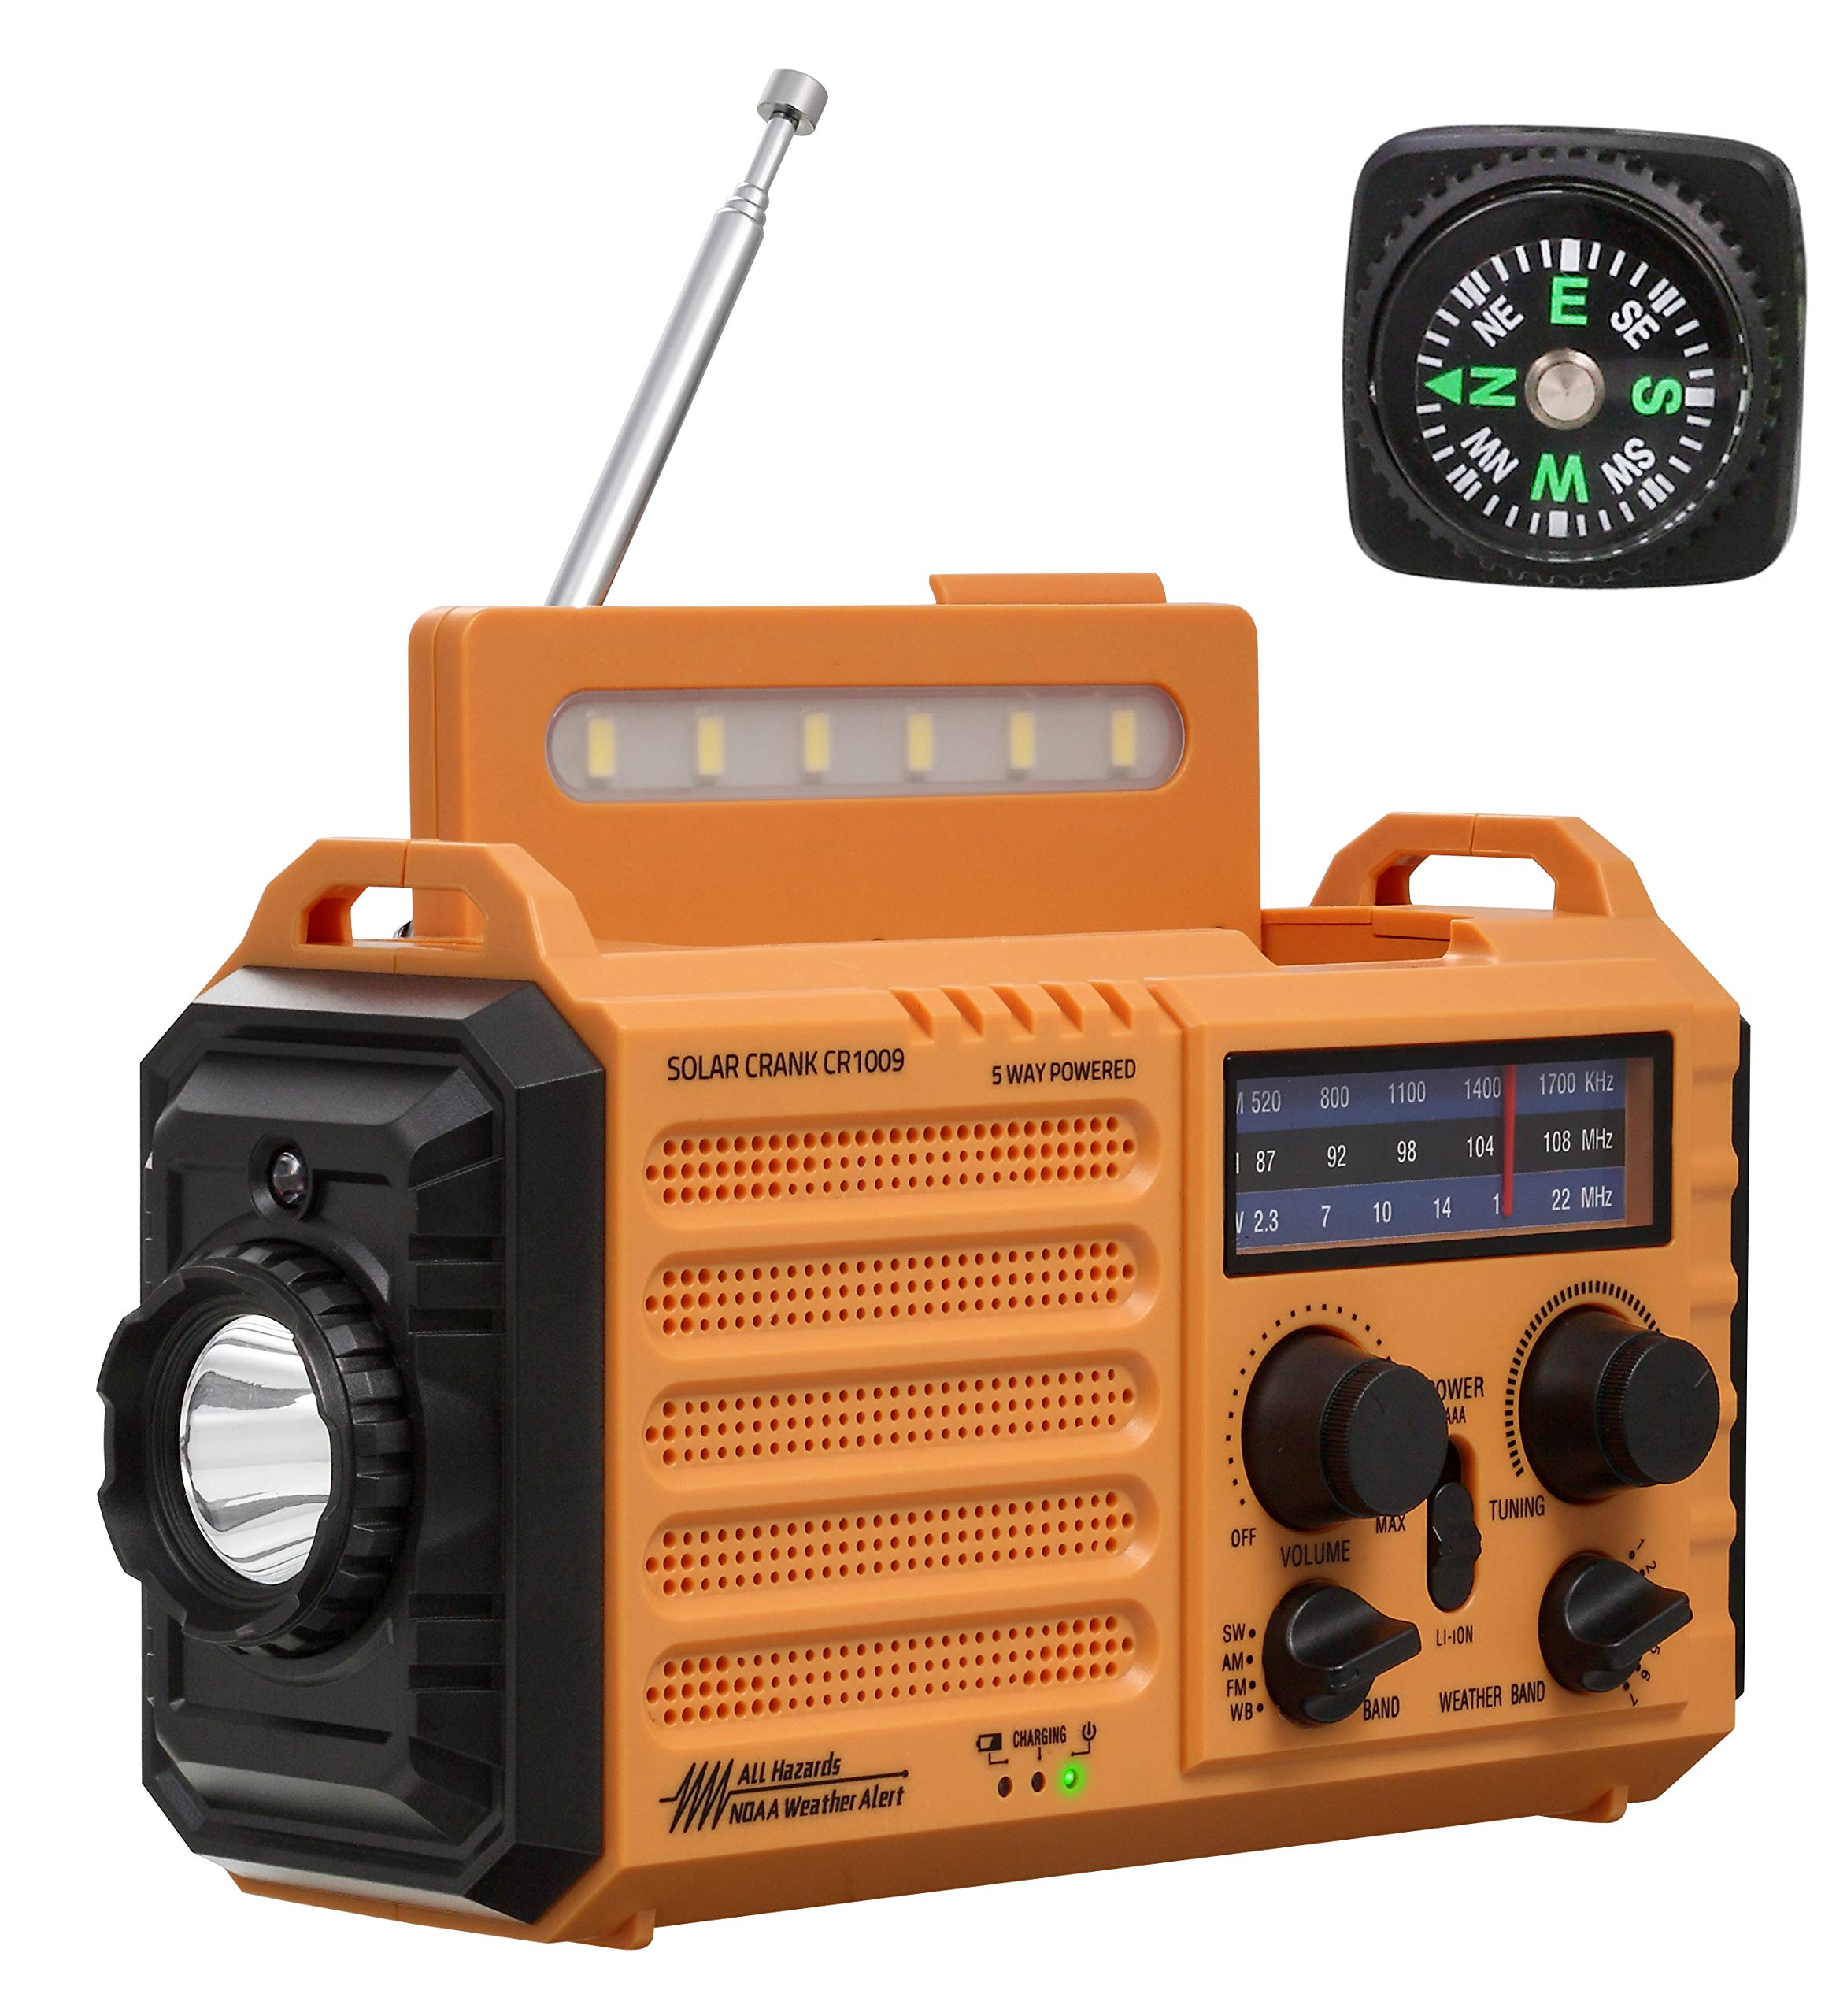 NOAA Weather Radio for Household Outdoor Emergency - Portable AM/FM SW Radio, 5 Way Powered Solar/Hand Crank/2000mAh Rechargeable Power Bank/USB Charger, LED Flashlight, Reading Lamp, Compass, Strap by HOLABABY